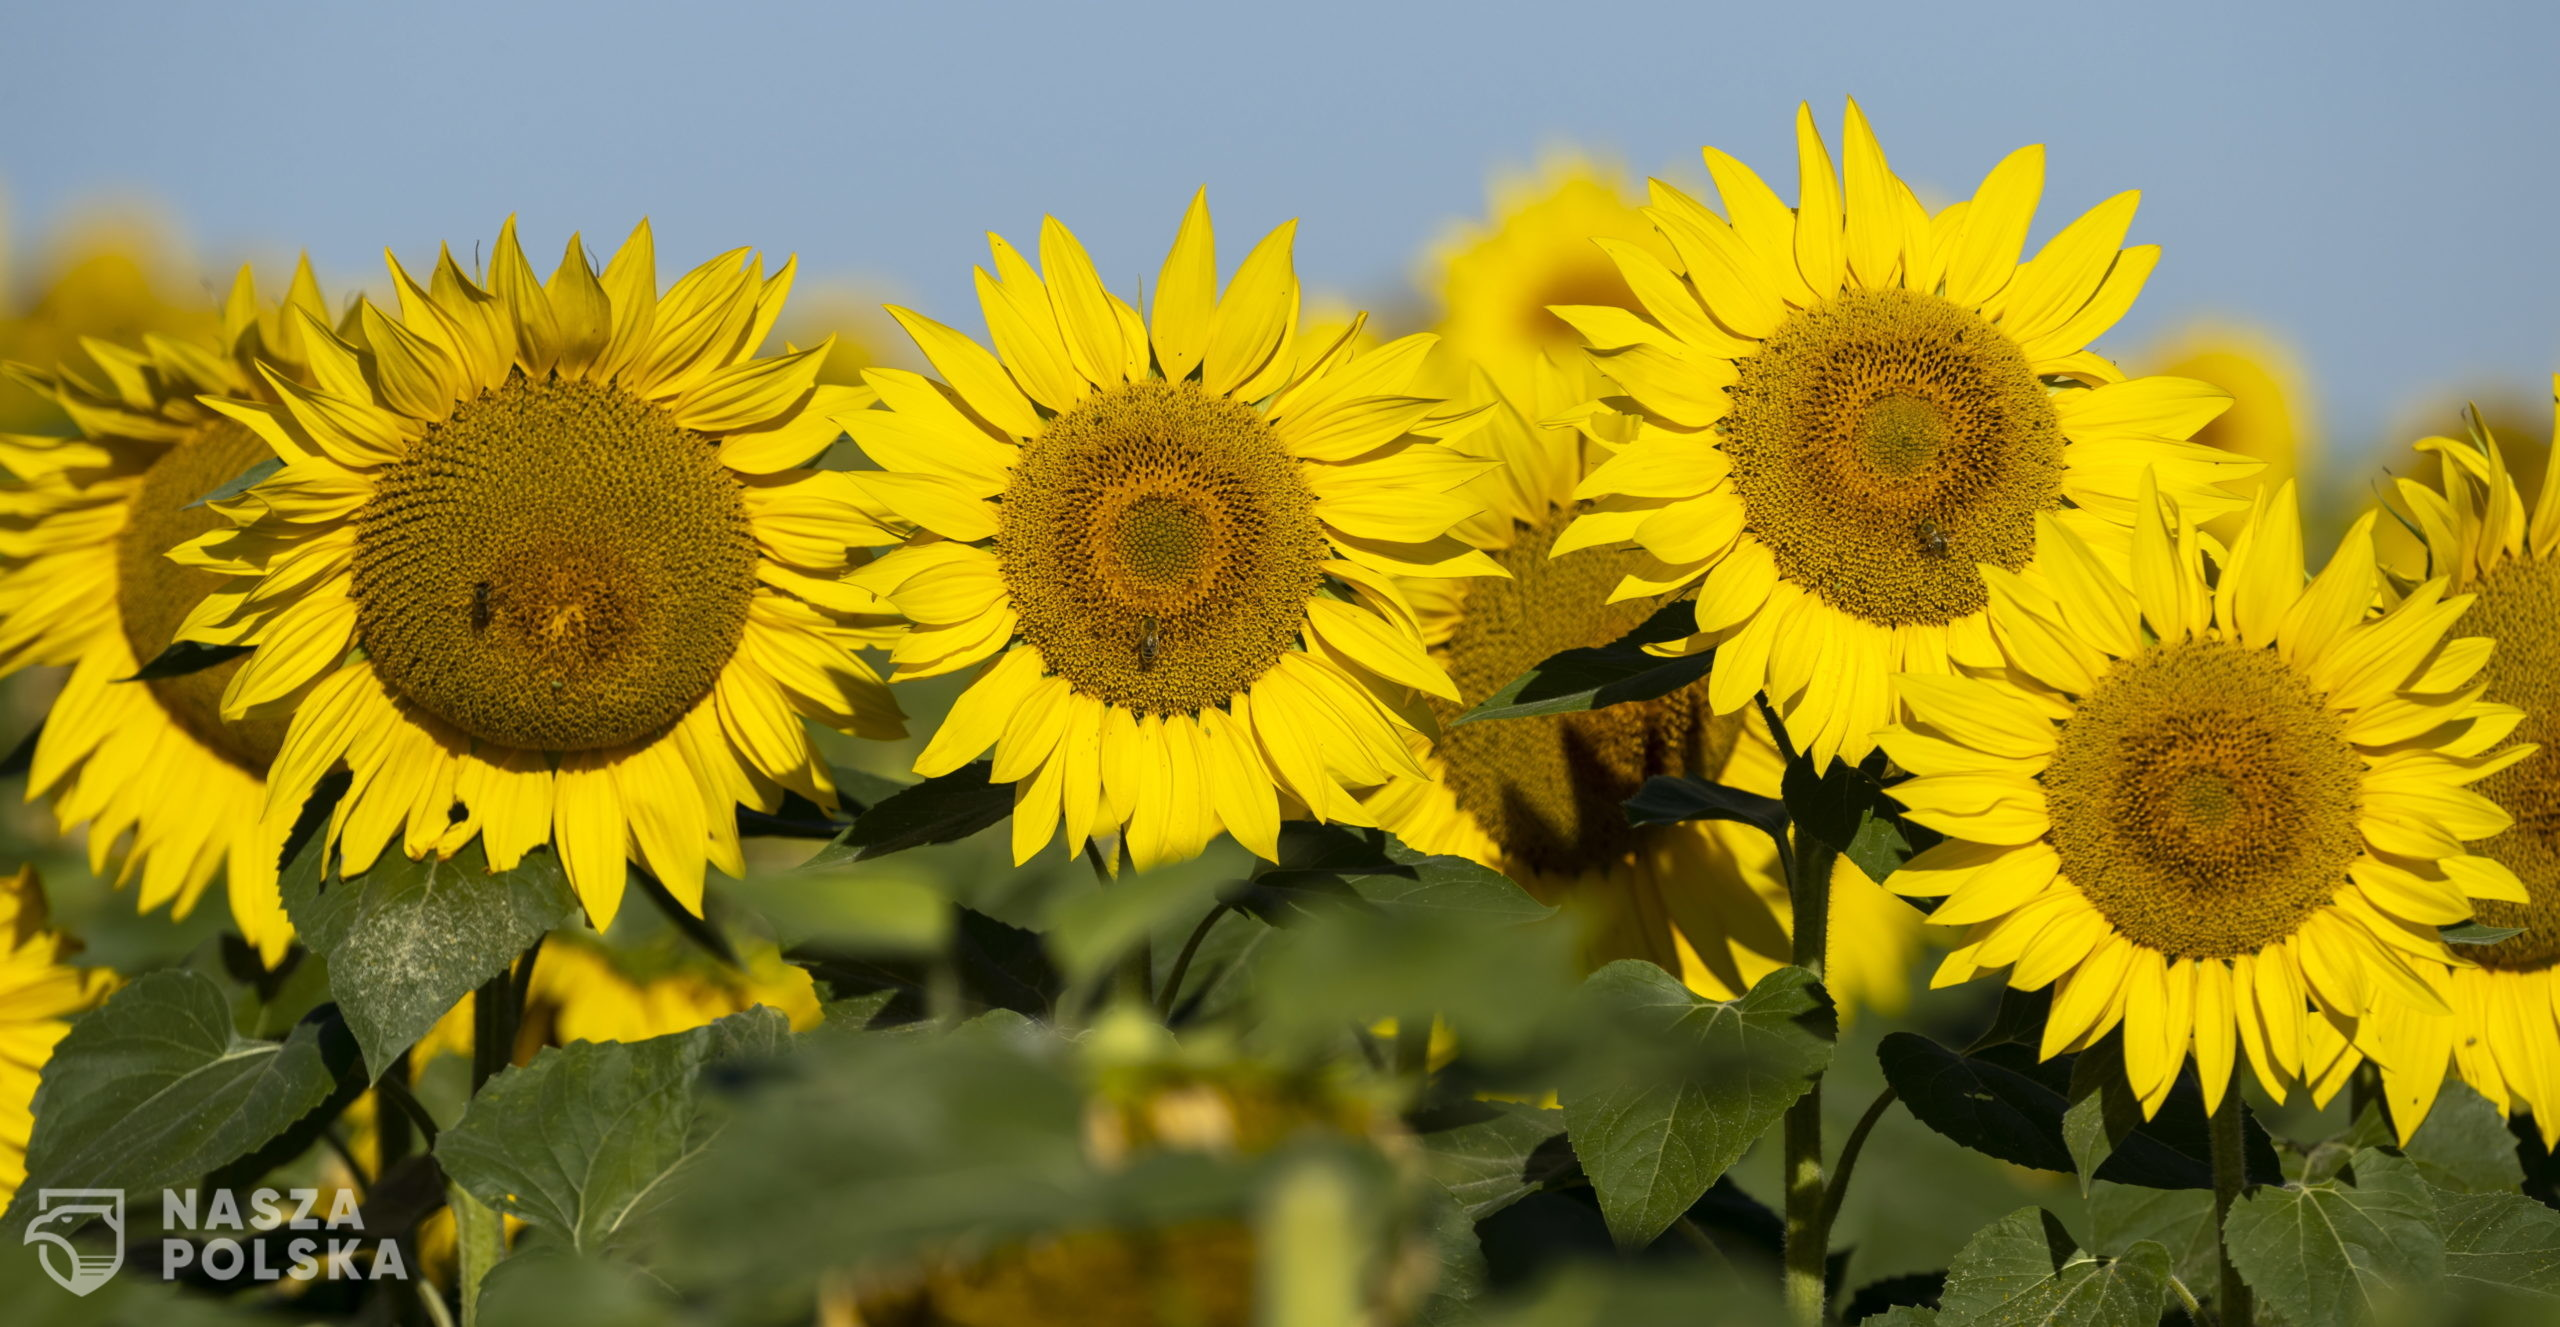 epa08573805 Sunflowers bloom in a field near Alzey, Germany, 30 July 2020. According to weather forecasts, the next days are expected to bring temperatures at about 34 degrees Celsius in south-western Germany.  EPA/RONALD WITTEK  Dostawca: PAP/EPA.